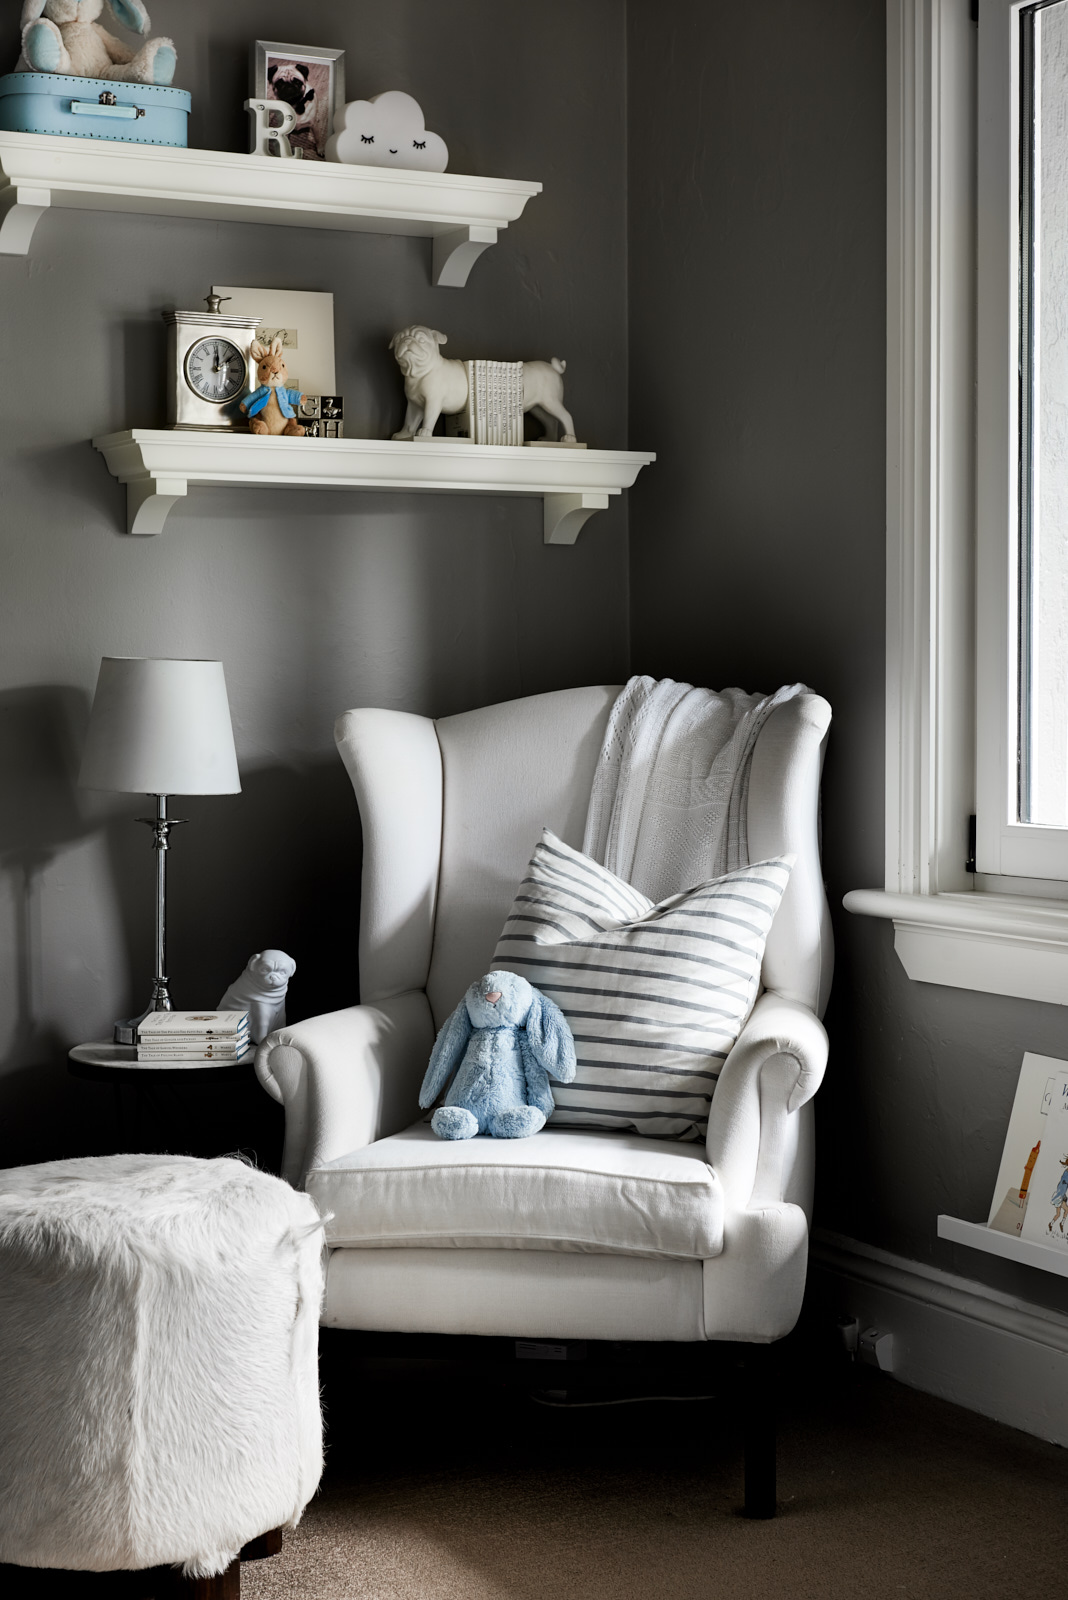 interior-decorating-lounge-chair-reading-Liz-Hayward